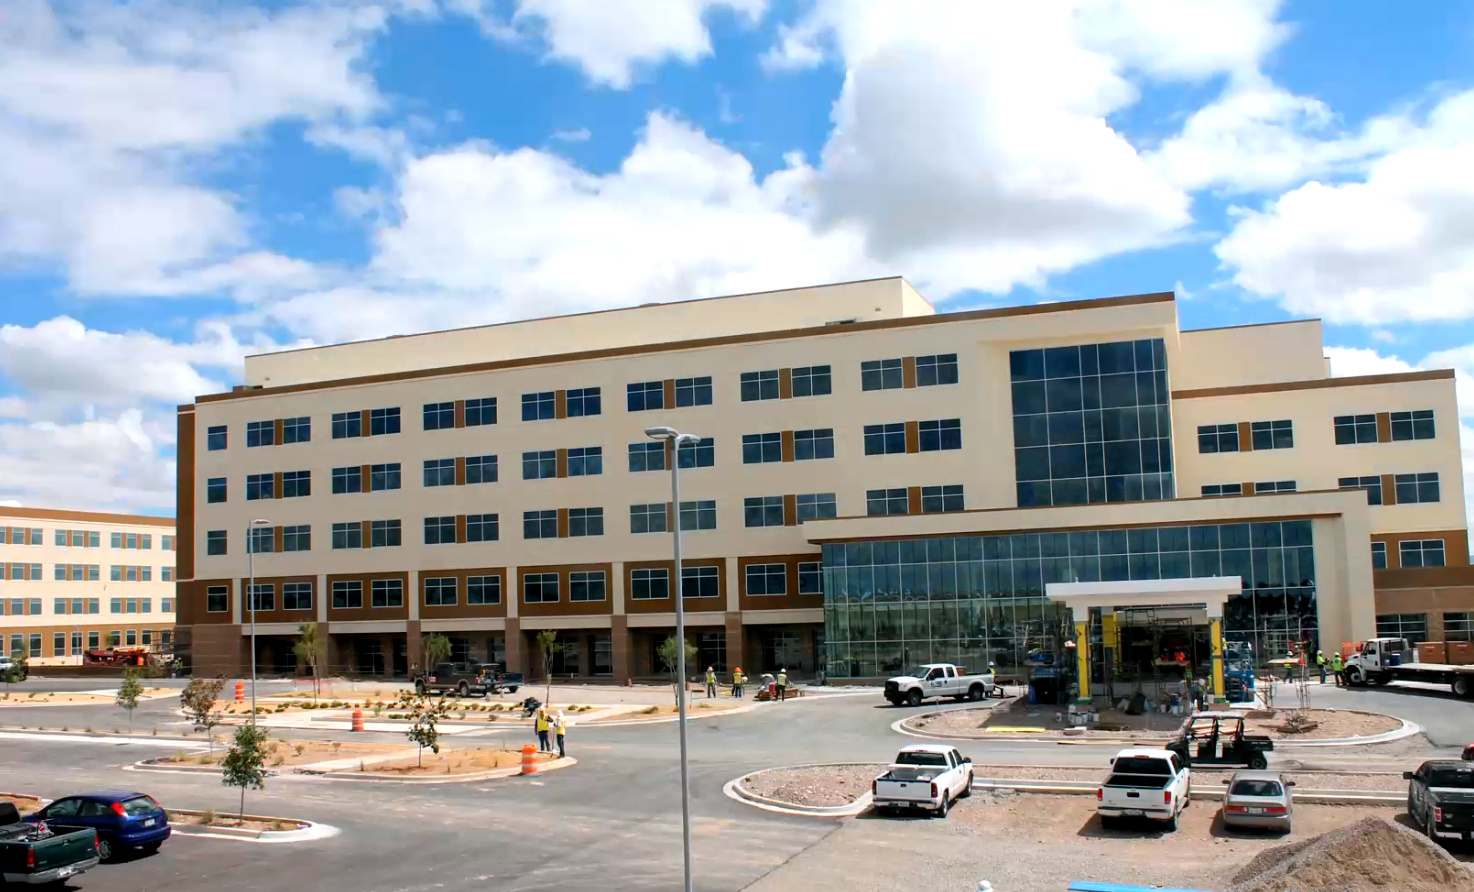 El paso development news new northwest el paso hospital for New homes el paso tx west side